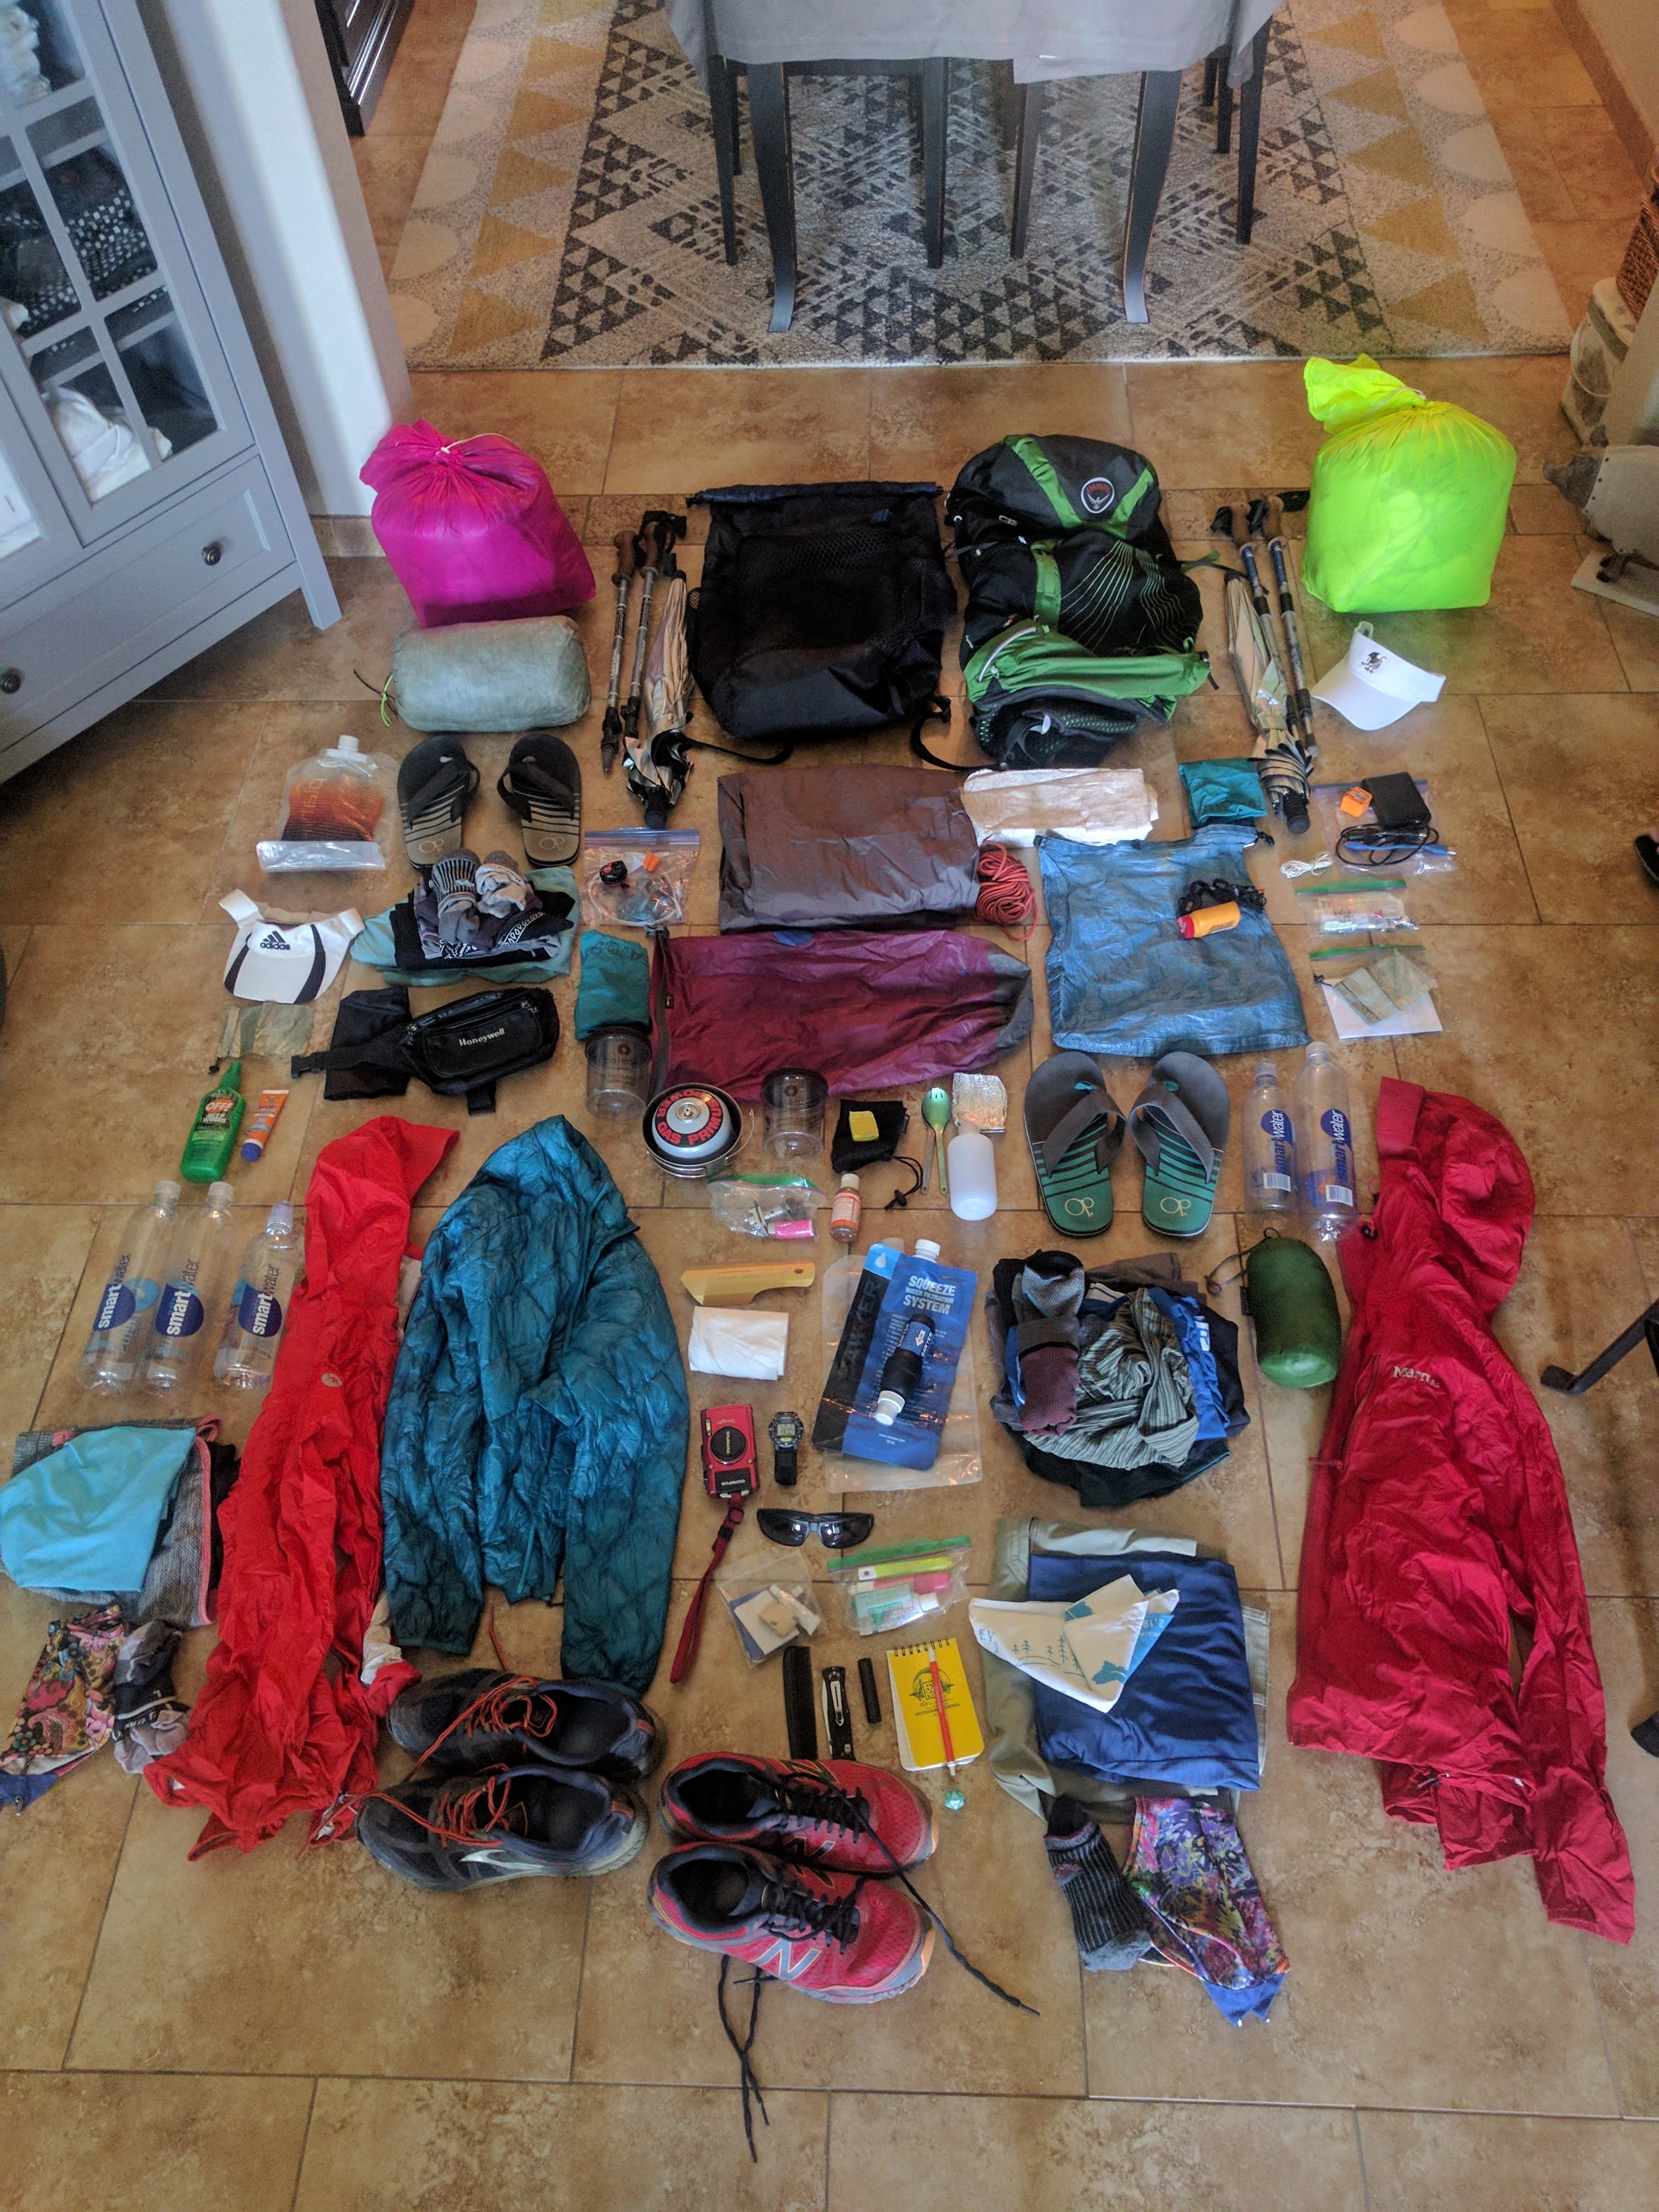 Piñata And Sourstraws' PCT Before-and-After Gear - The Trek